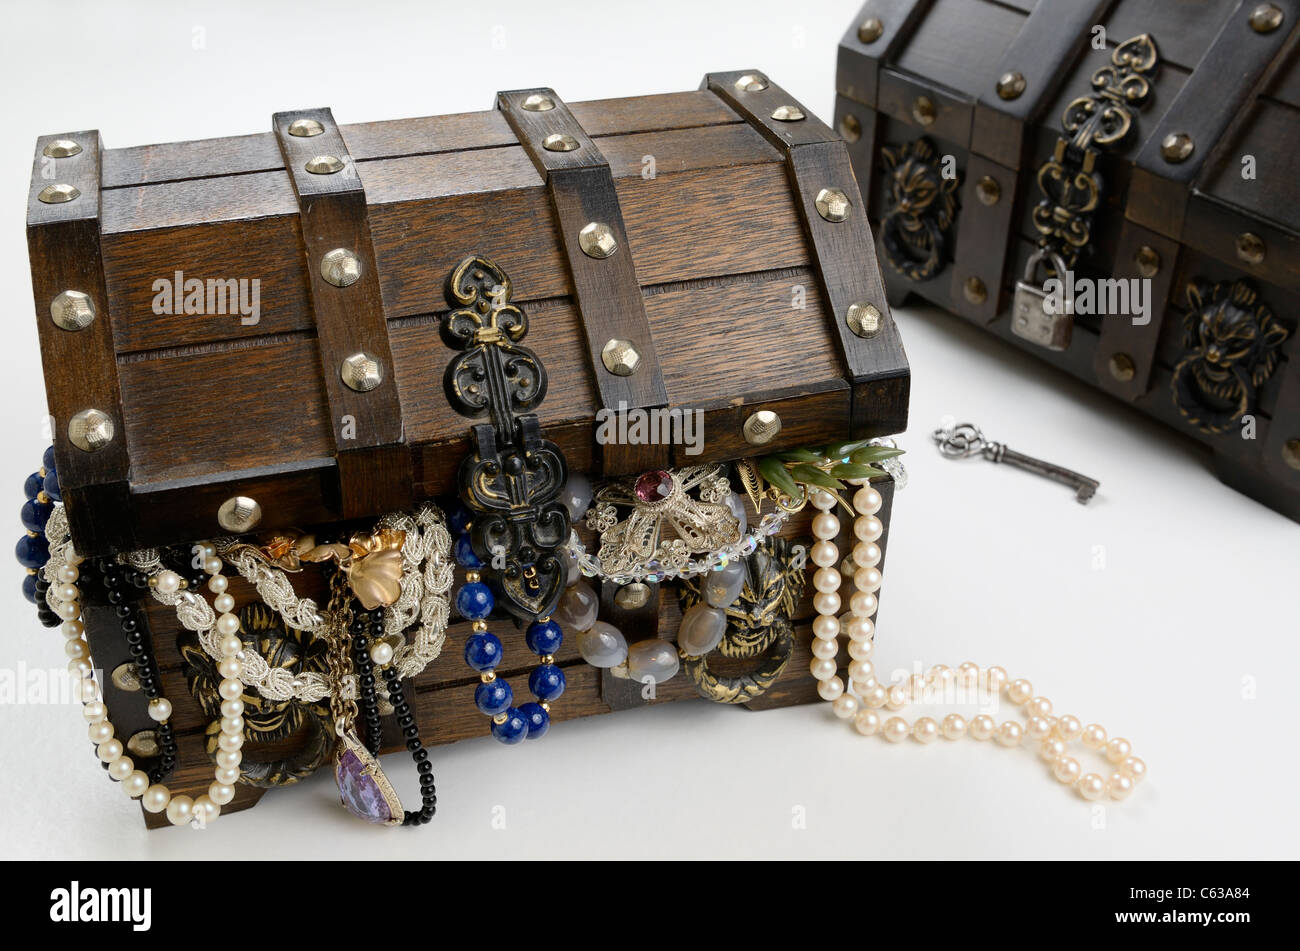 Two treasure chests one open and overflowing with riches of pearls and jewels - Stock Image